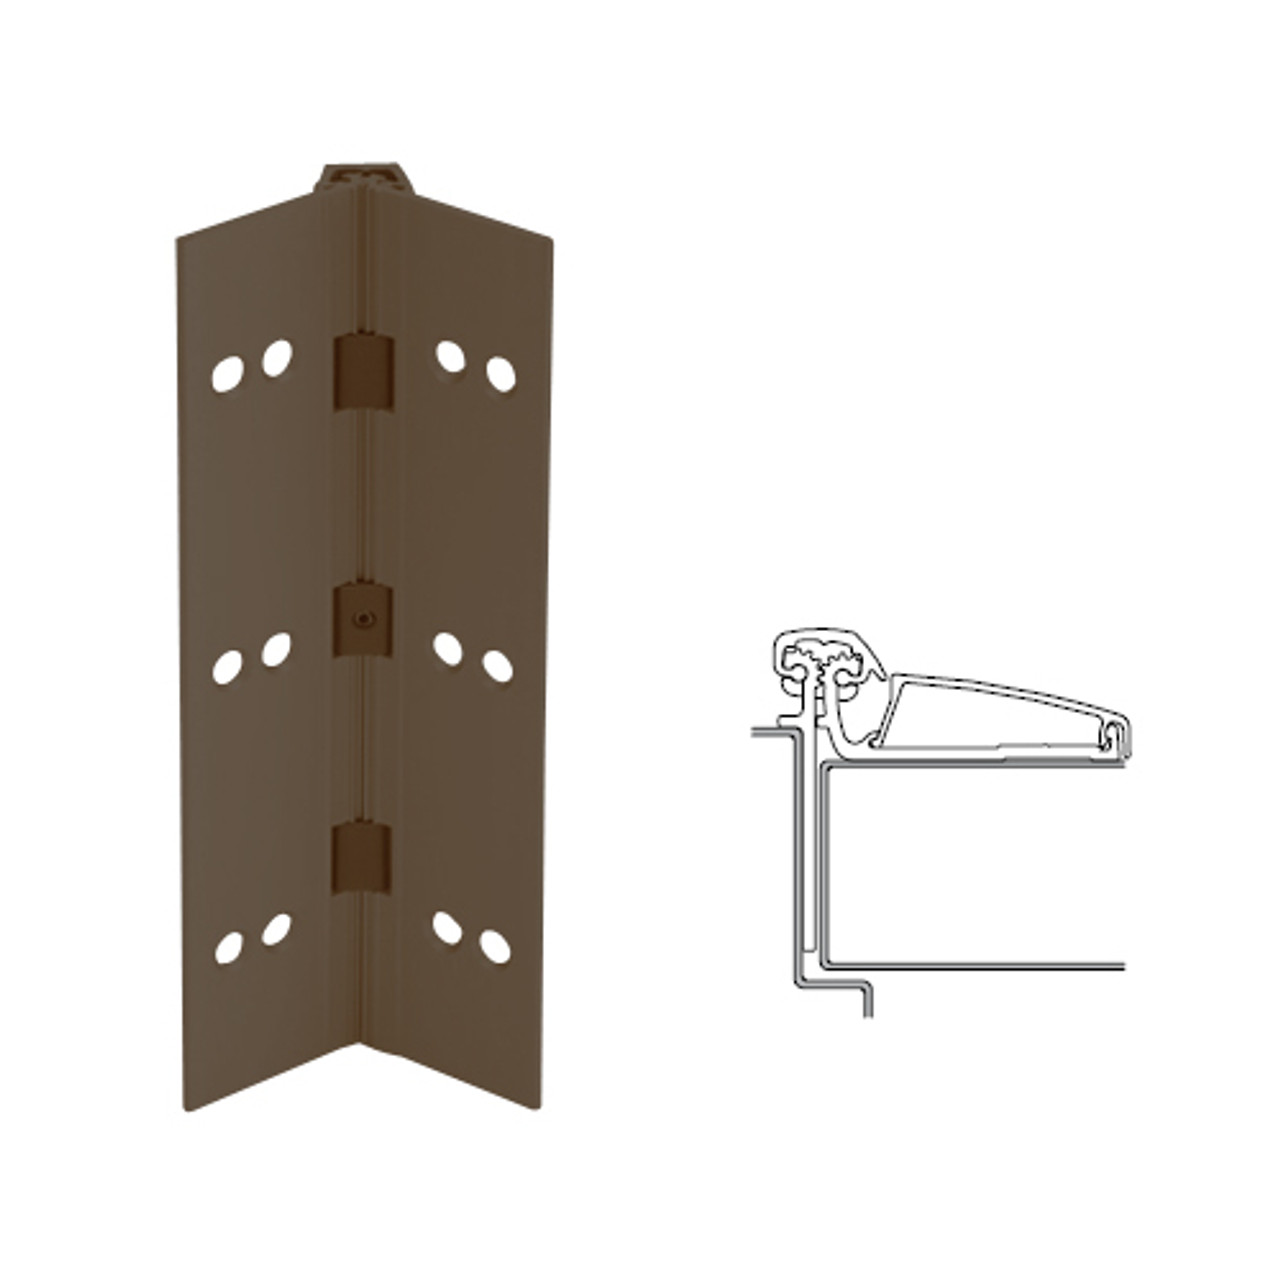 046XY-313AN-85-TF IVES Adjustable Half Surface Continuous Geared Hinges with Thread Forming Screws in Dark Bronze Anodized